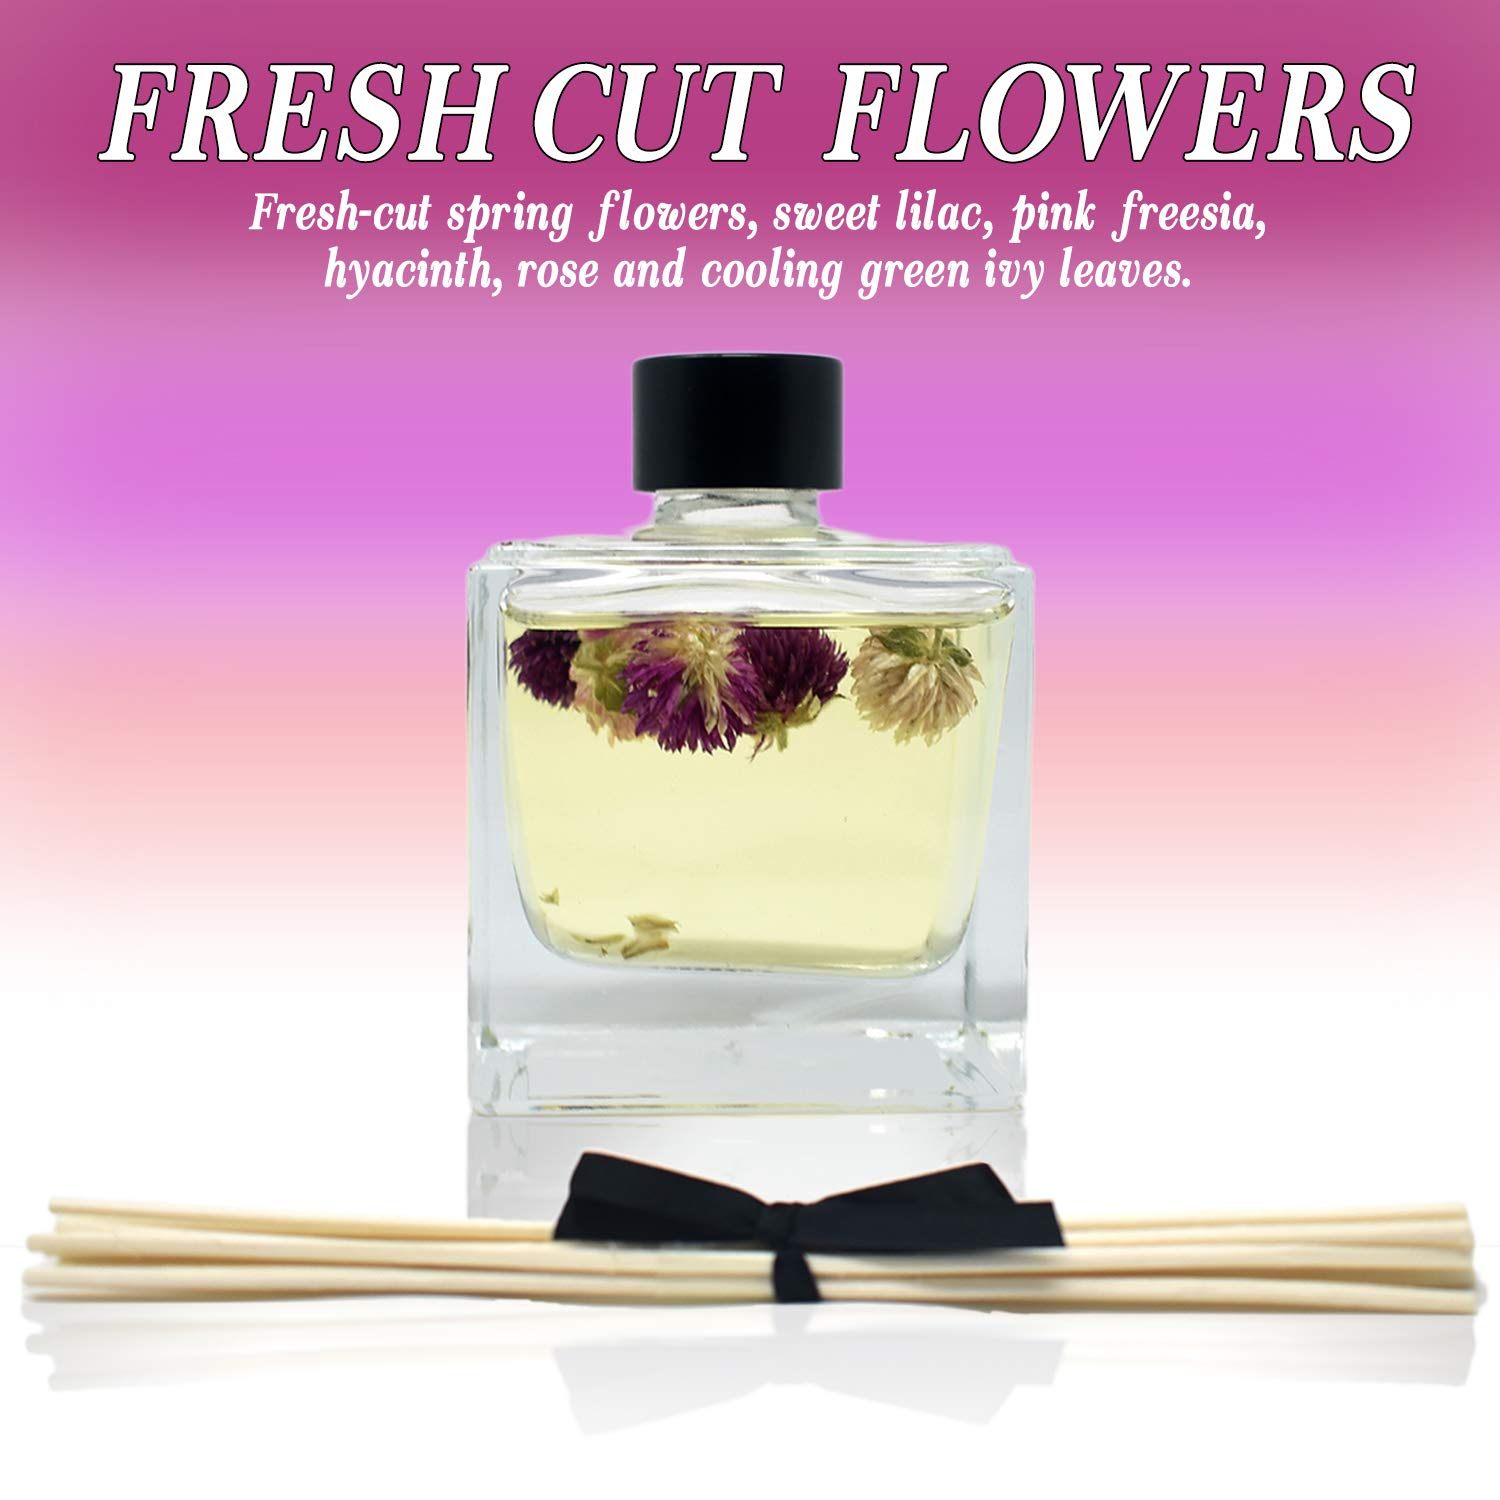 LOVSPA Fresh Cut Flowers Reed Diffuser Oil and Sticks Gift Set | Spring is in The Air! A Floral Medley of Sweet Lilac, Pink Freesia, Hyacinth, Rose & Green Ivy Leaves | Real Flowers in The Bottle! by LOVSPA (Image #3)